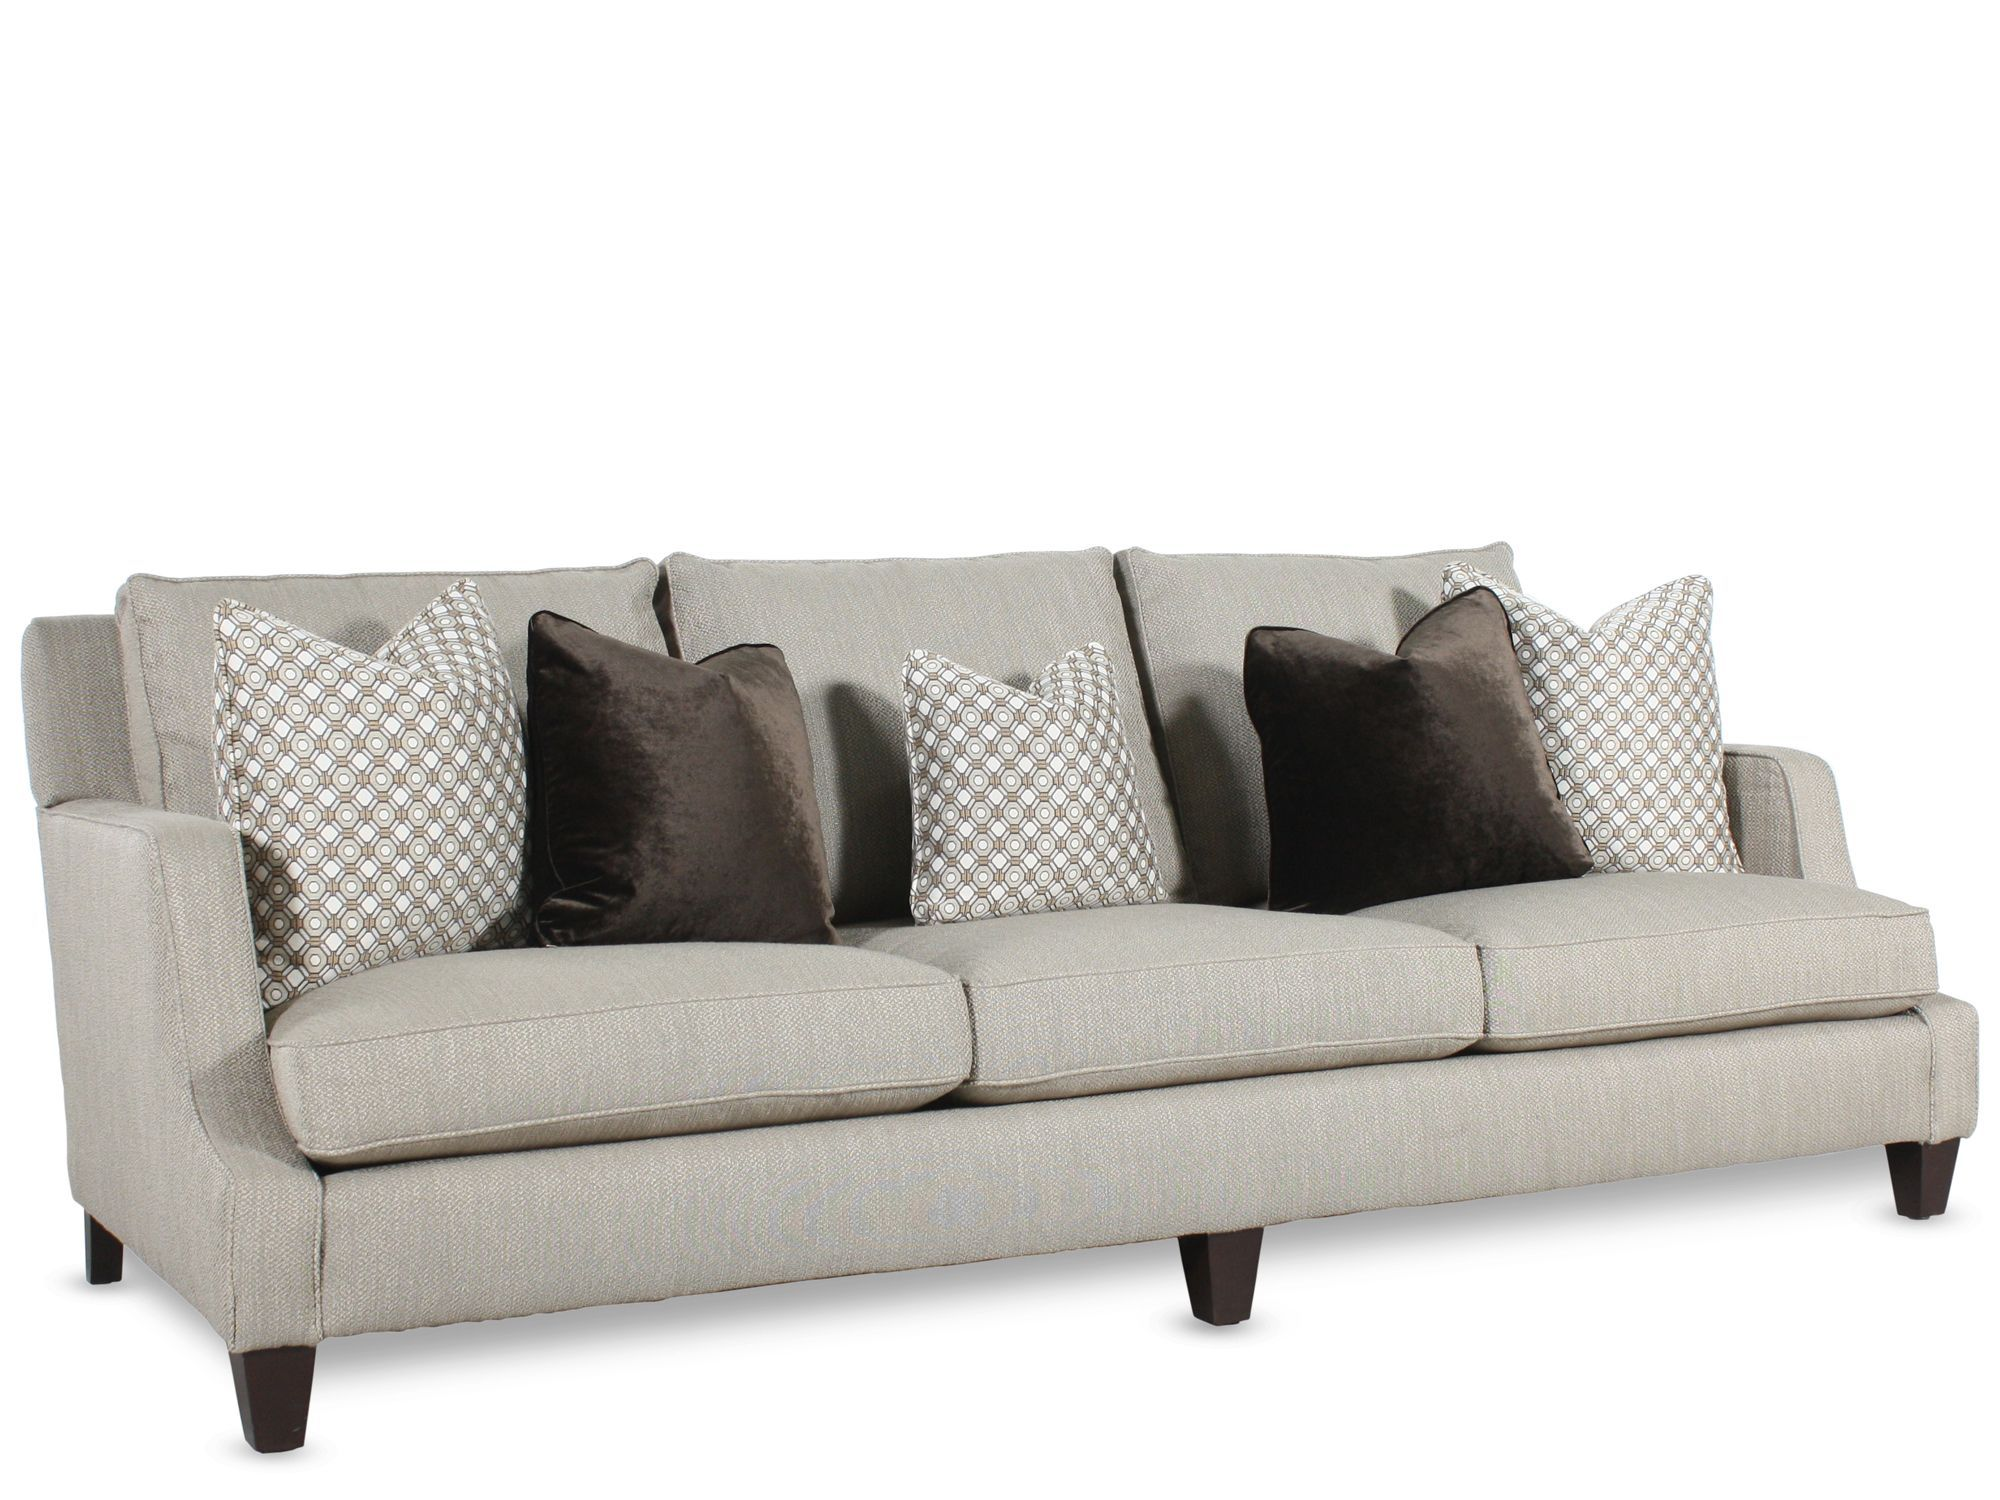 Bernhardt jackie sofa mathis brothers ideas for the for Bernhardt living room furniture